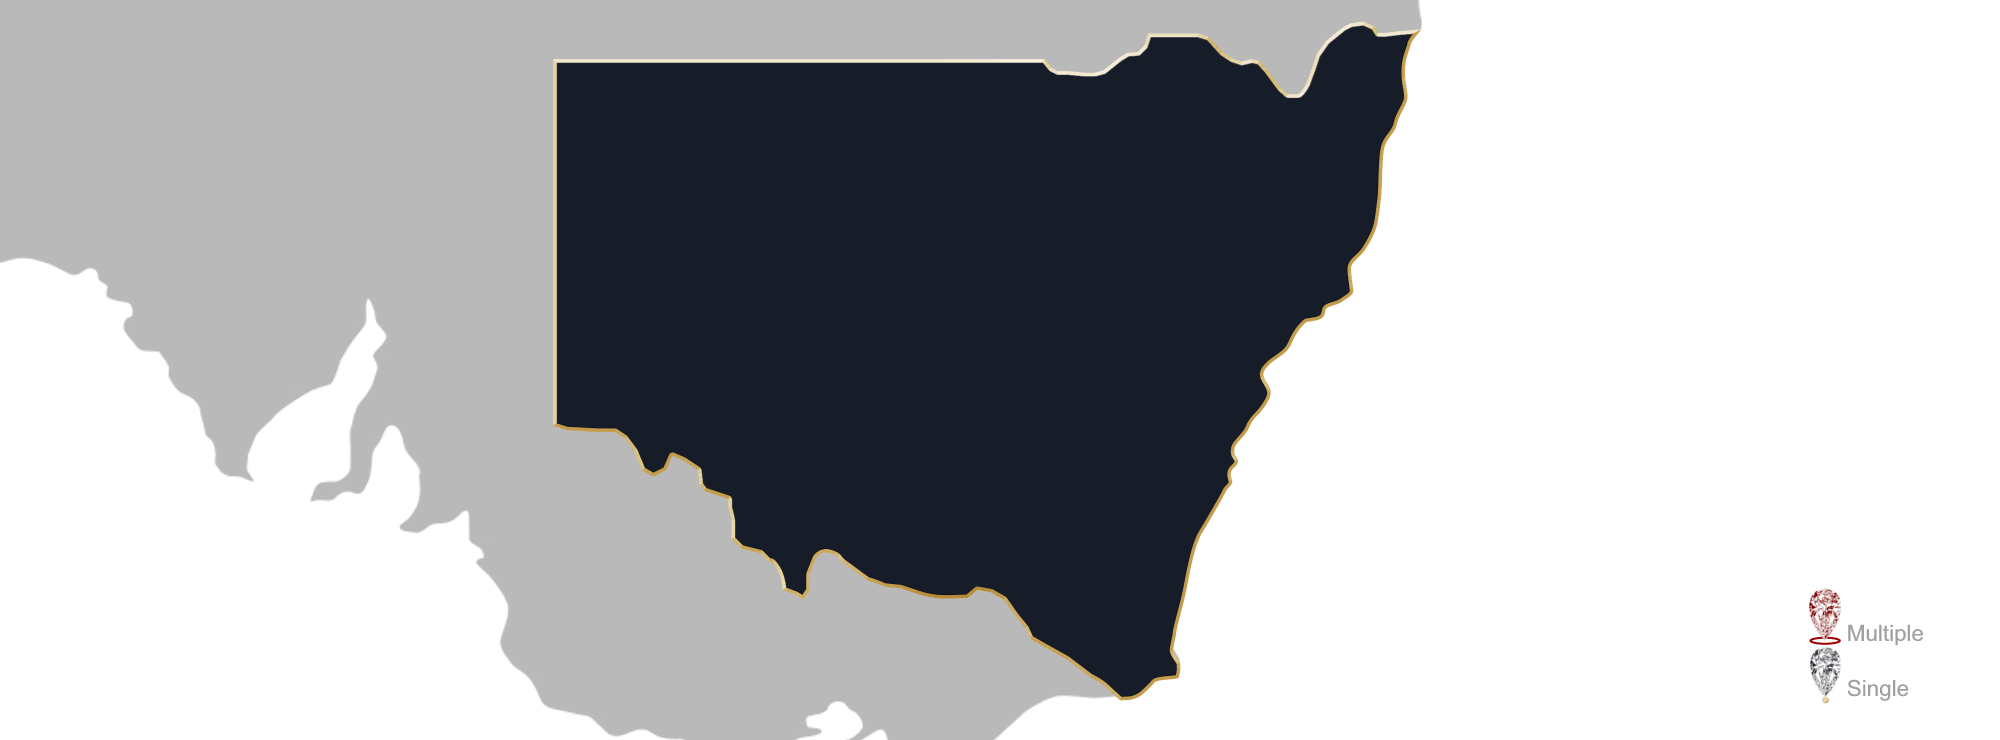 Map showing location of jewellery valuers in New South Wales